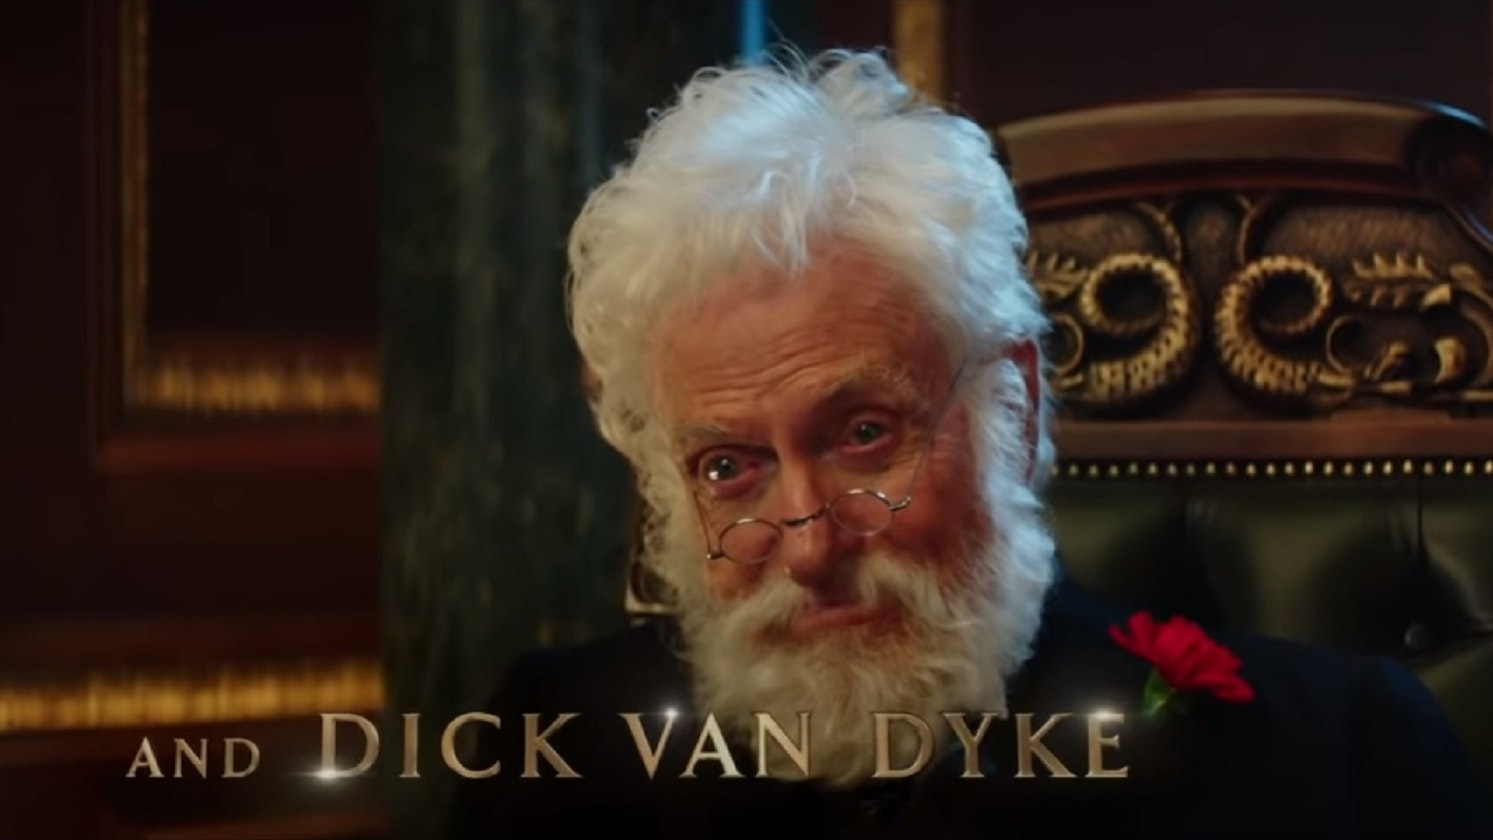 commercial Dick van dyke fire